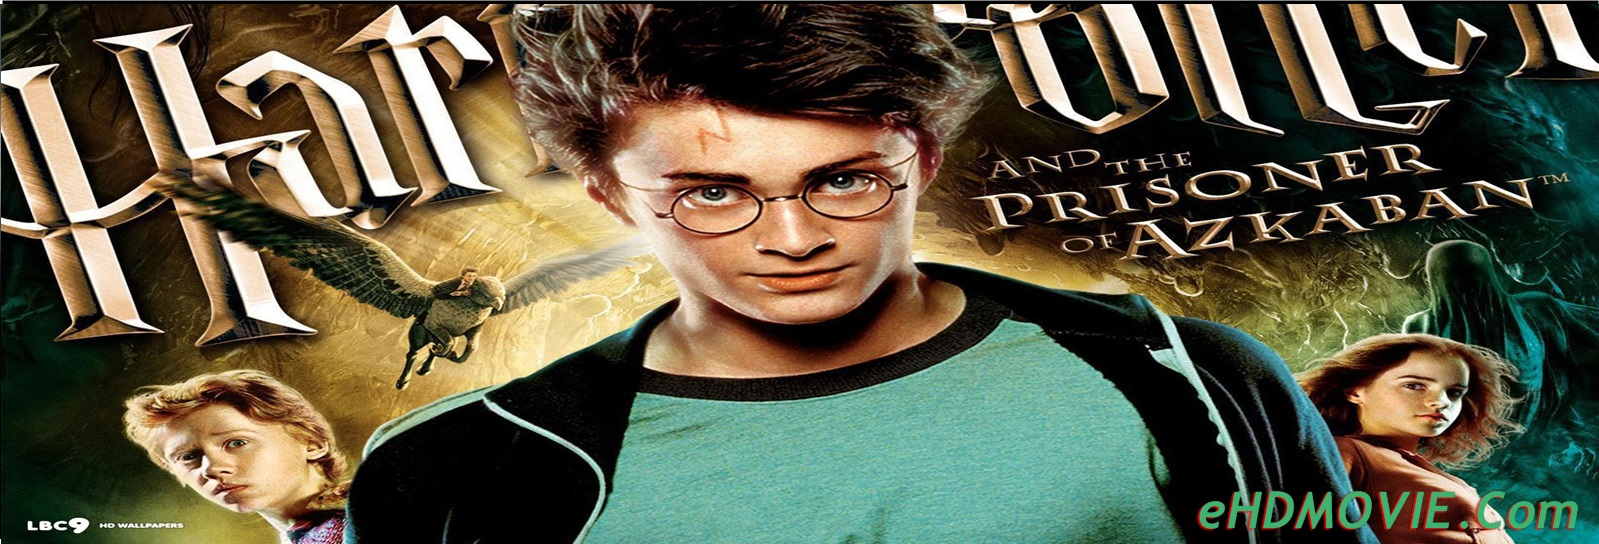 Harry Potter and the Prisoner of Azkaban 2004 Full Movie English 720p – 480p ORG BRRip 450MB - 1GB ESubs Free Download